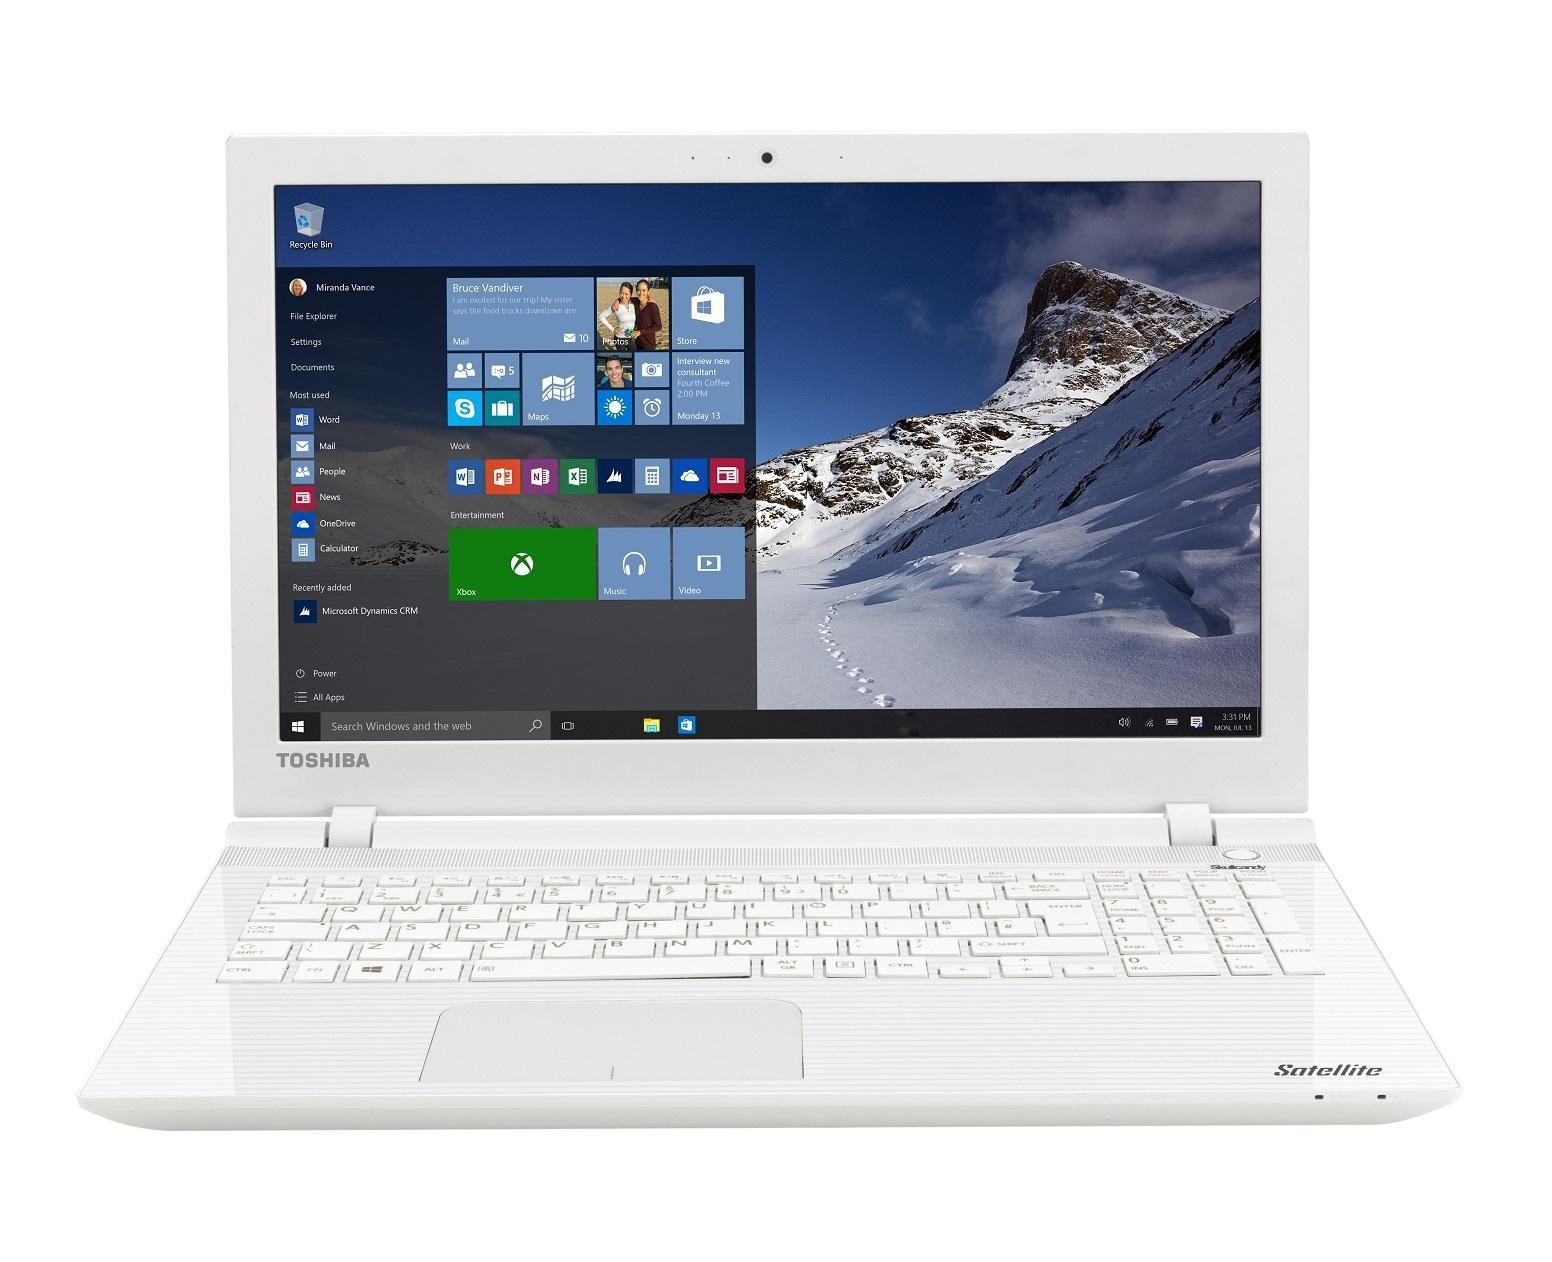 Toshiba%20Satellite%20L50-C-1GX%2015.6%20Inch%20Laptop%208GB%20RAM%201TB%20HDD%20White.jpg